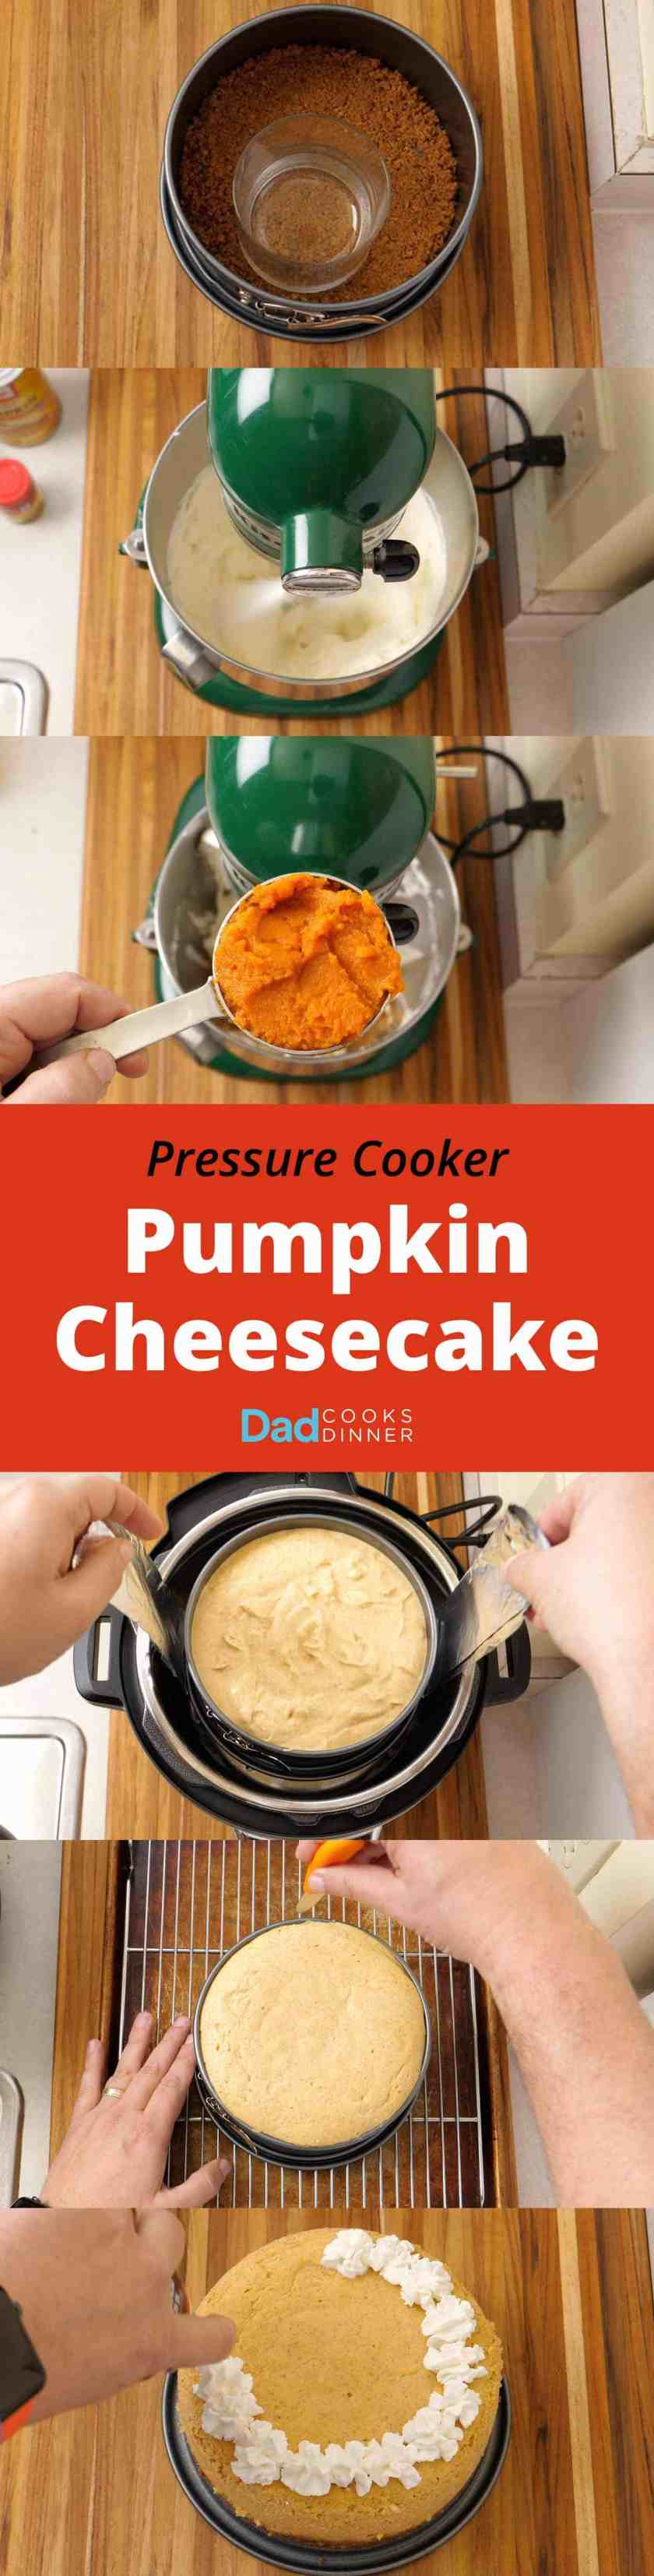 Pressure Cooker Pumpkin Cheesecake recipe. That's right, cheesecake from the pressure cooker. Pumpkin cheesecake is a quick and easy fall dessert.